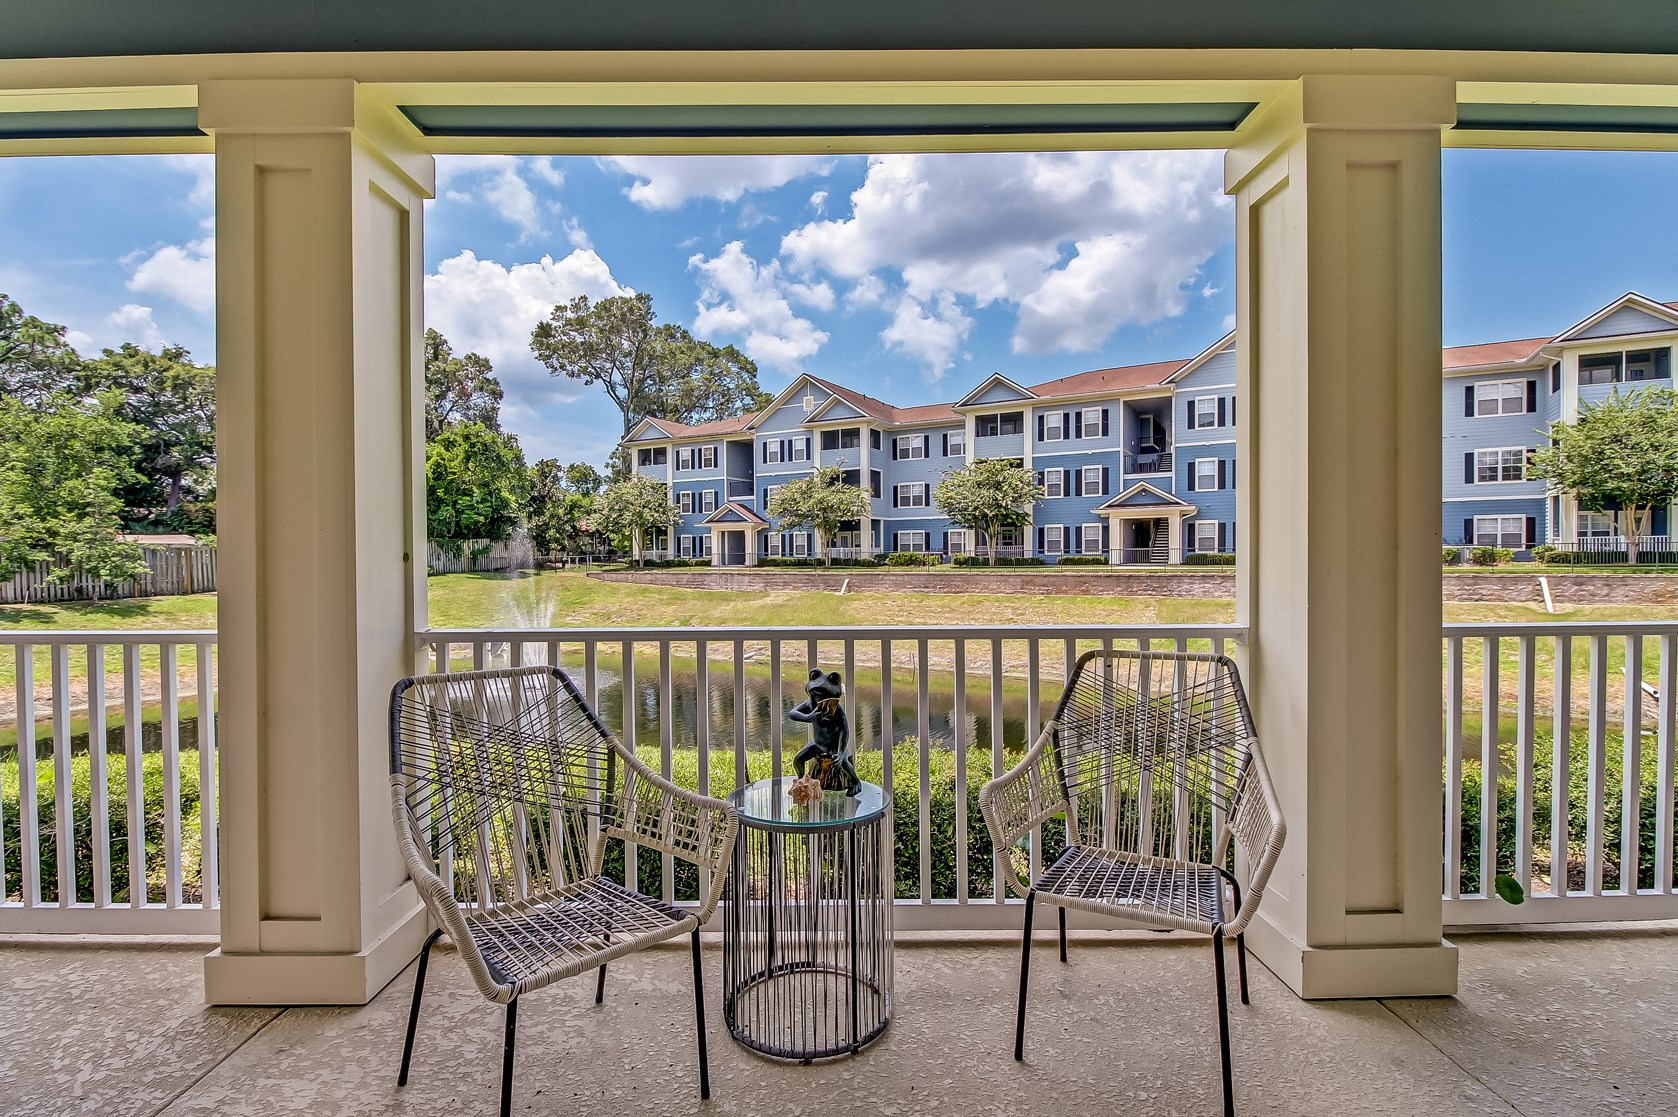 Patio at Magnolia Village Apartments in Jacksonville, FL